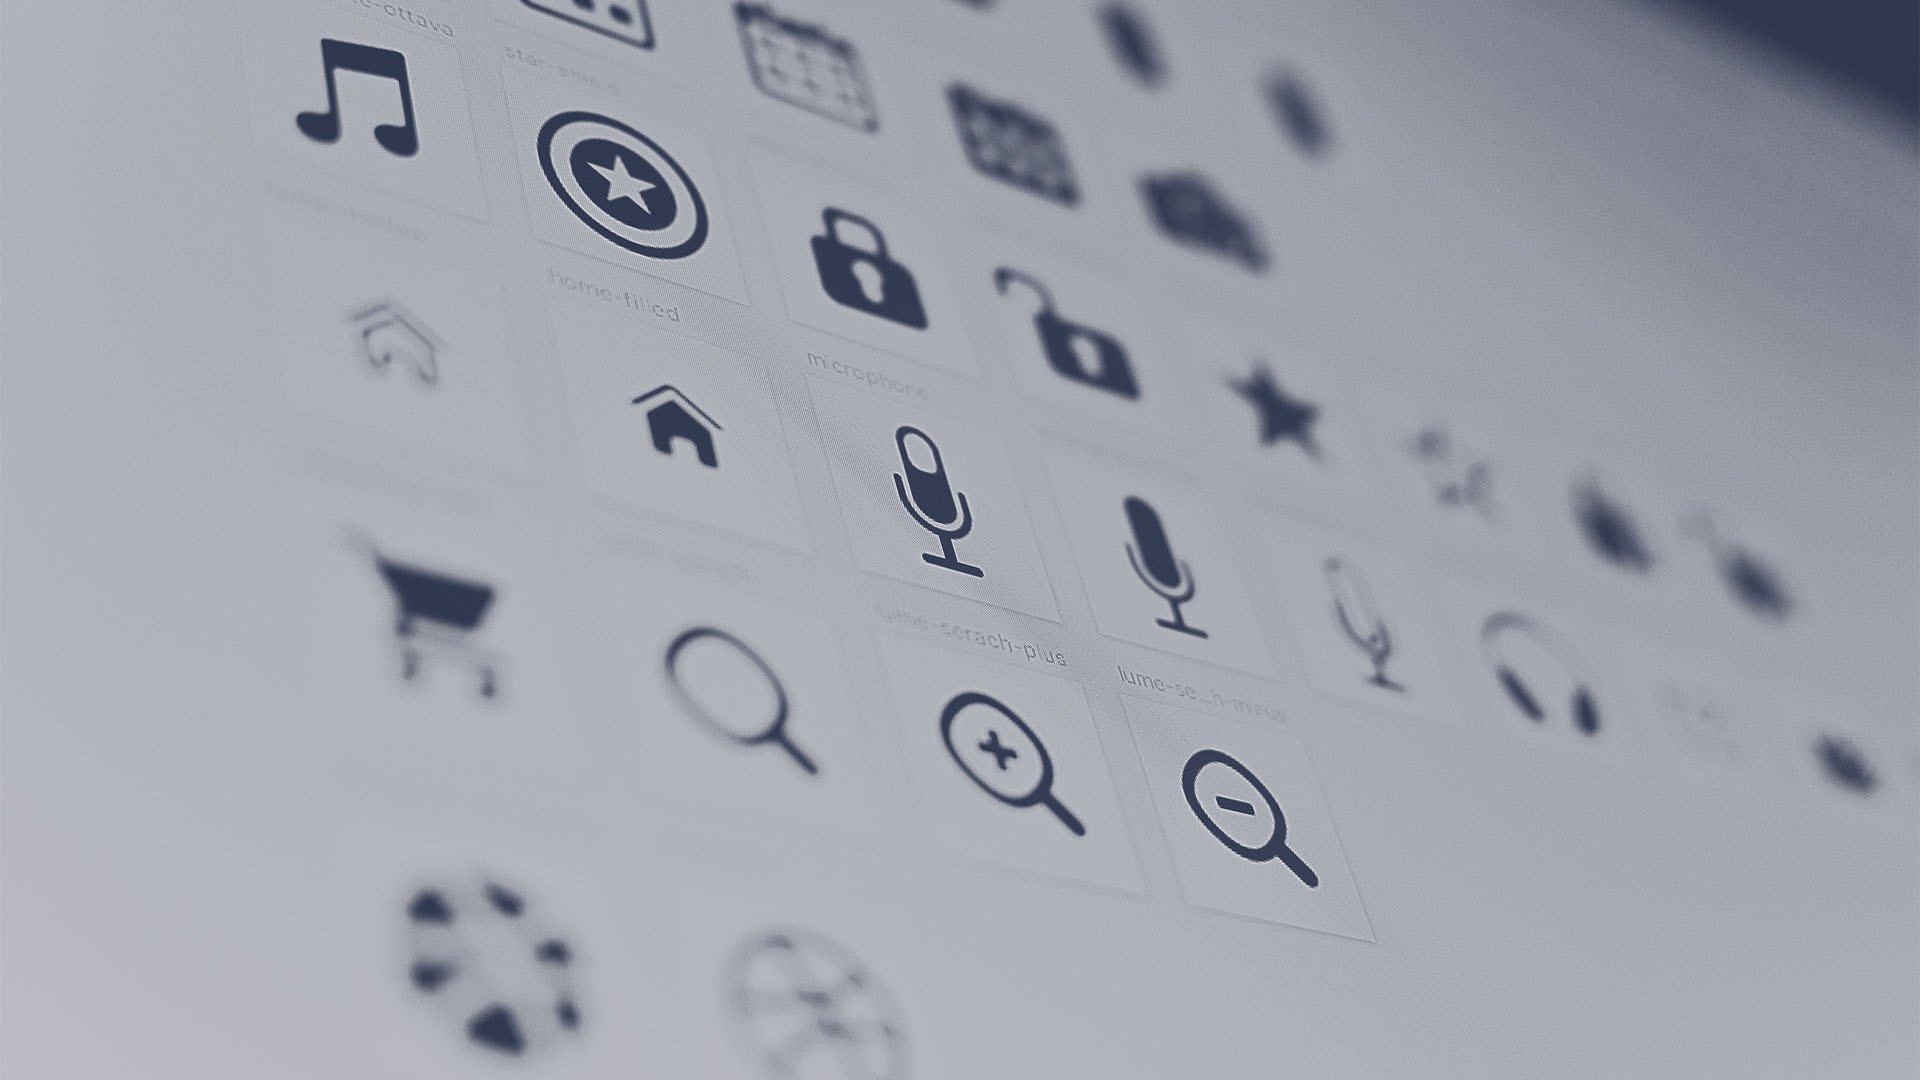 60 free outline icon sets perfect for contemporary designs_featured image